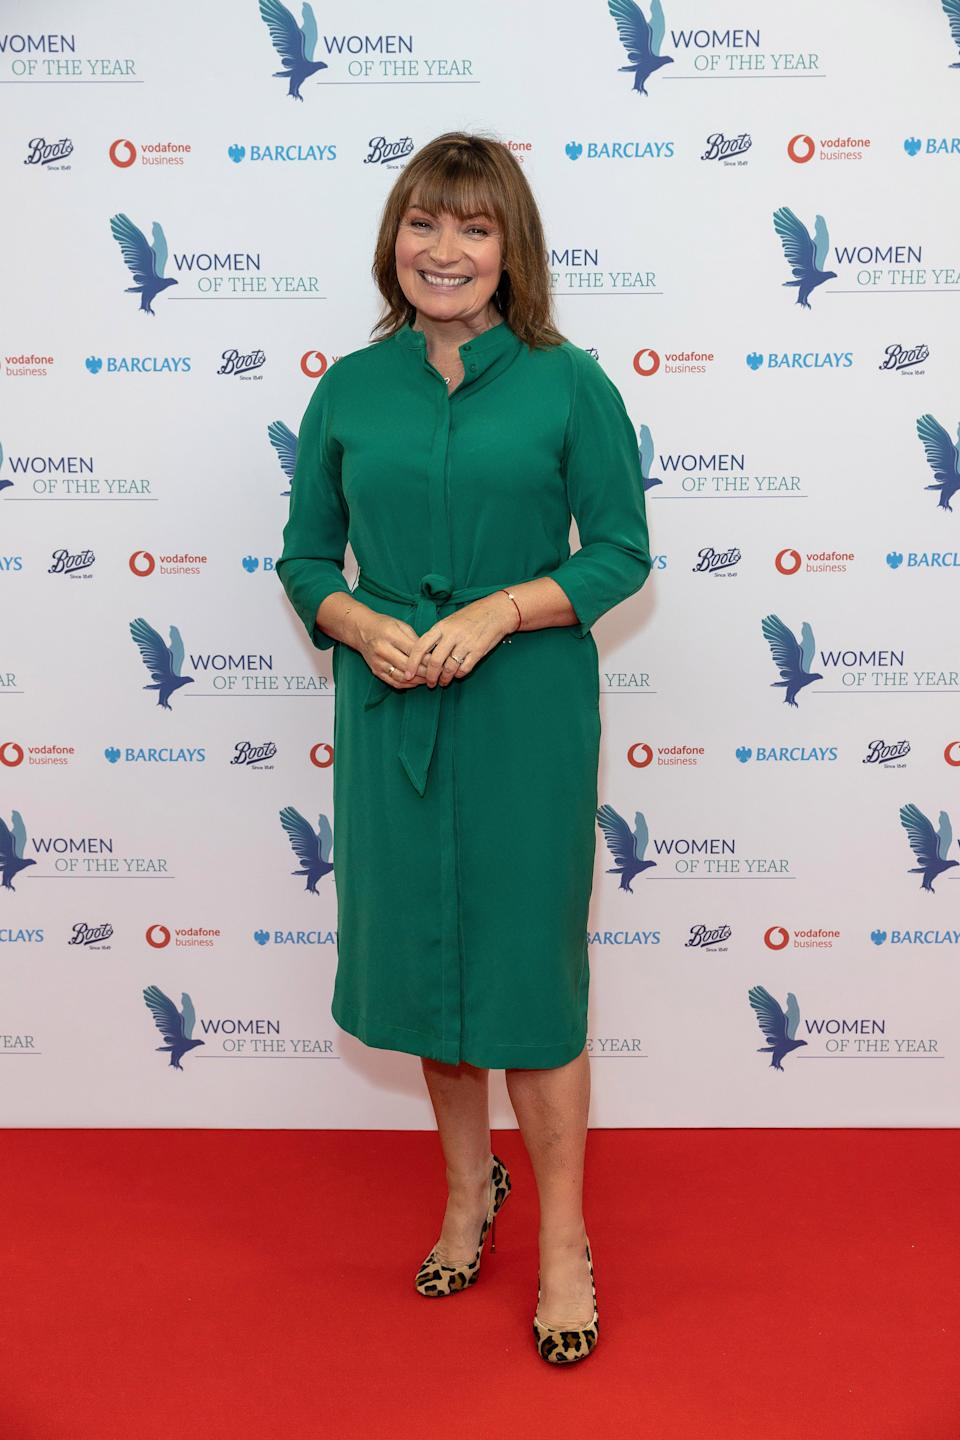 LONDON, ENGLAND - OCTOBER 12:  Lorraine Kelly ( Presenting The Women of the Year Community Spirit Award ) attends the Women of the Year Awards on October 12, 2020 in London, England. (Photo by David M. Benett/Dave Benett/Getty Images for Women of the Year Awards )